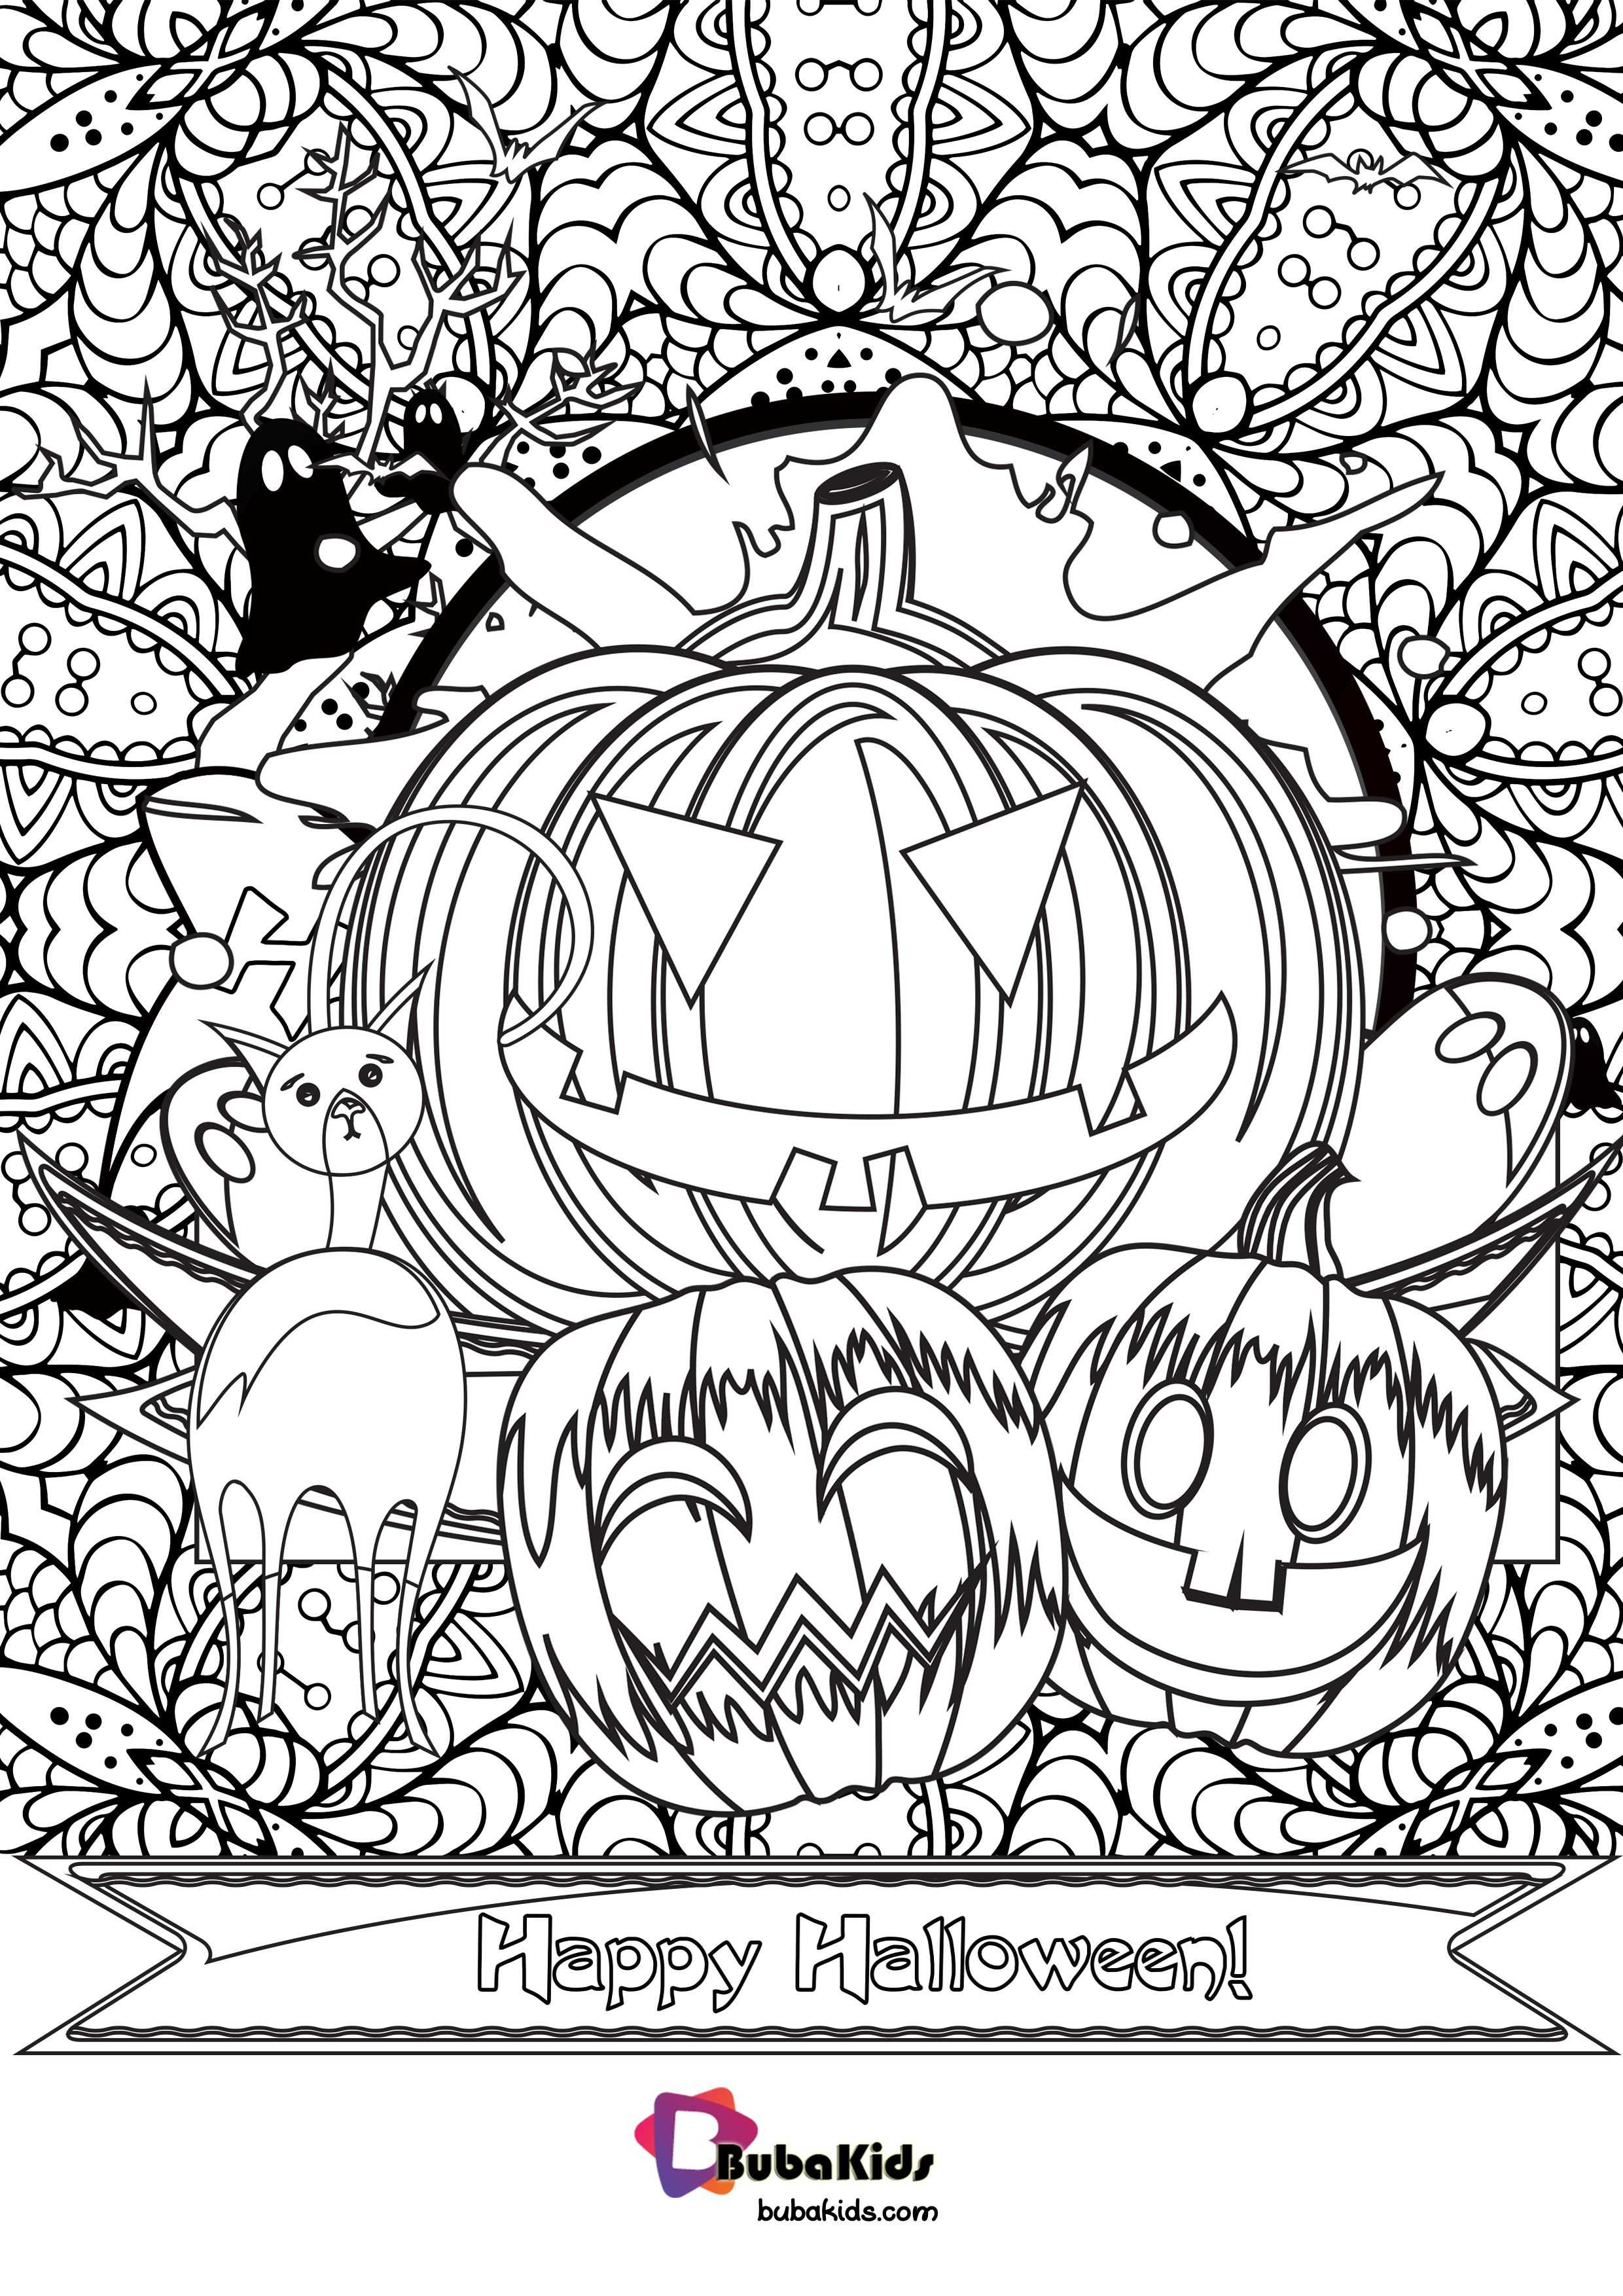 Happy Halloween Pumpkin and Cat Coloring Page   Cartoon ...